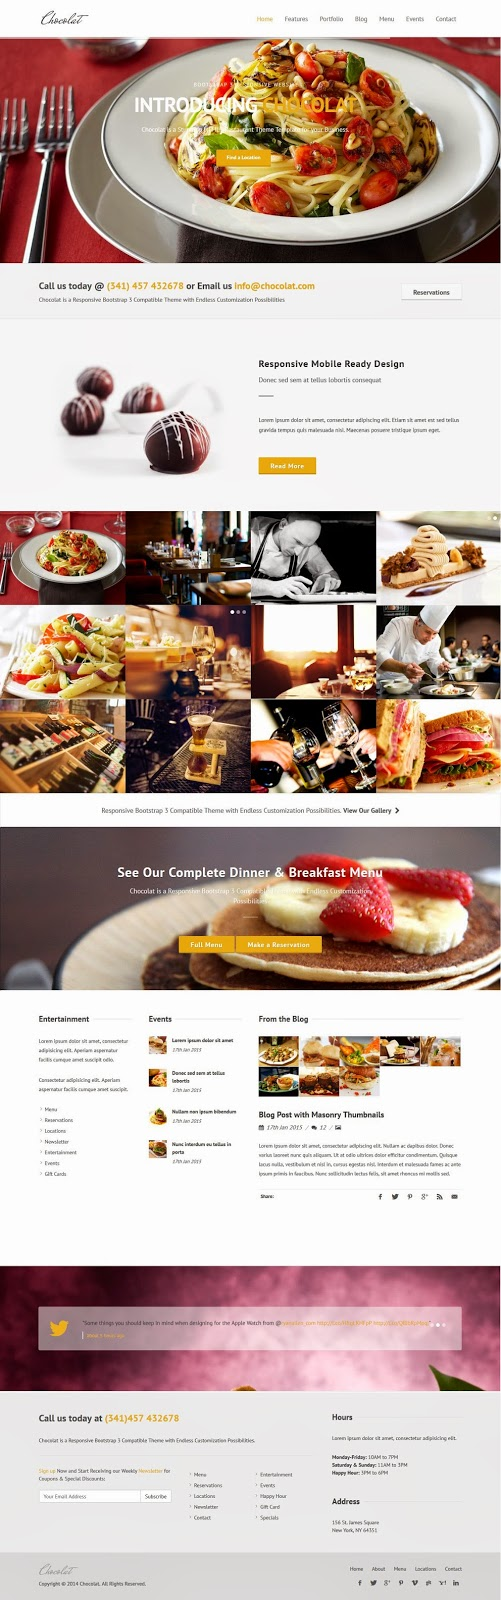 Best Bootstrap Restaurant Template